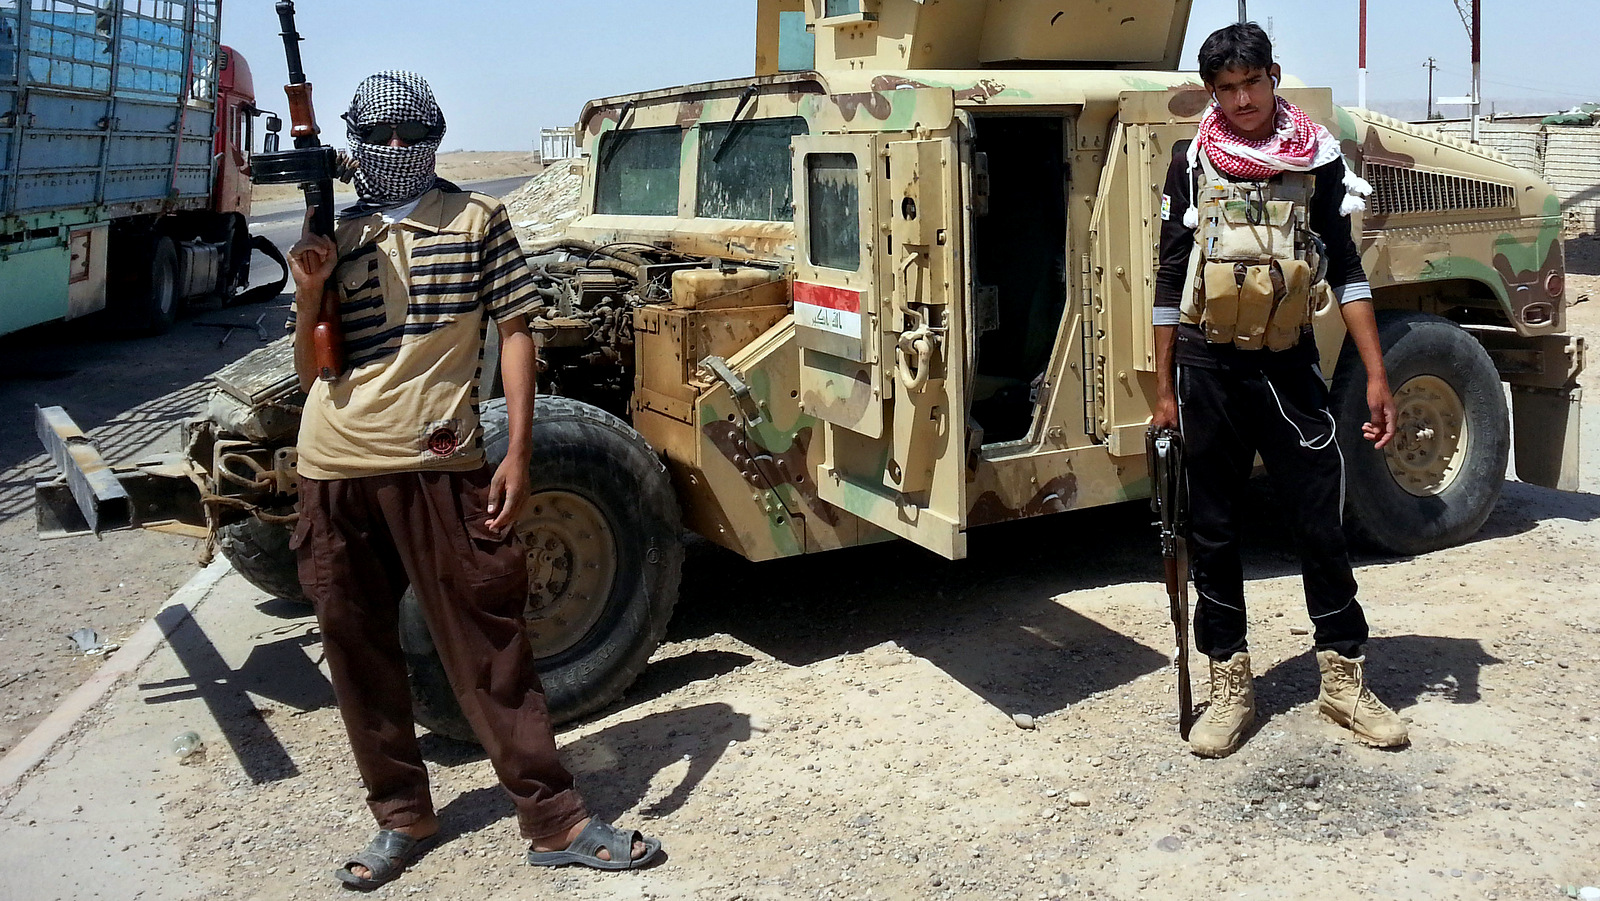 ISIS militants stand with a captured American Humvee, given to the Iraqi Army and captured by ISIS, June 19, 2014. (AP Photo)